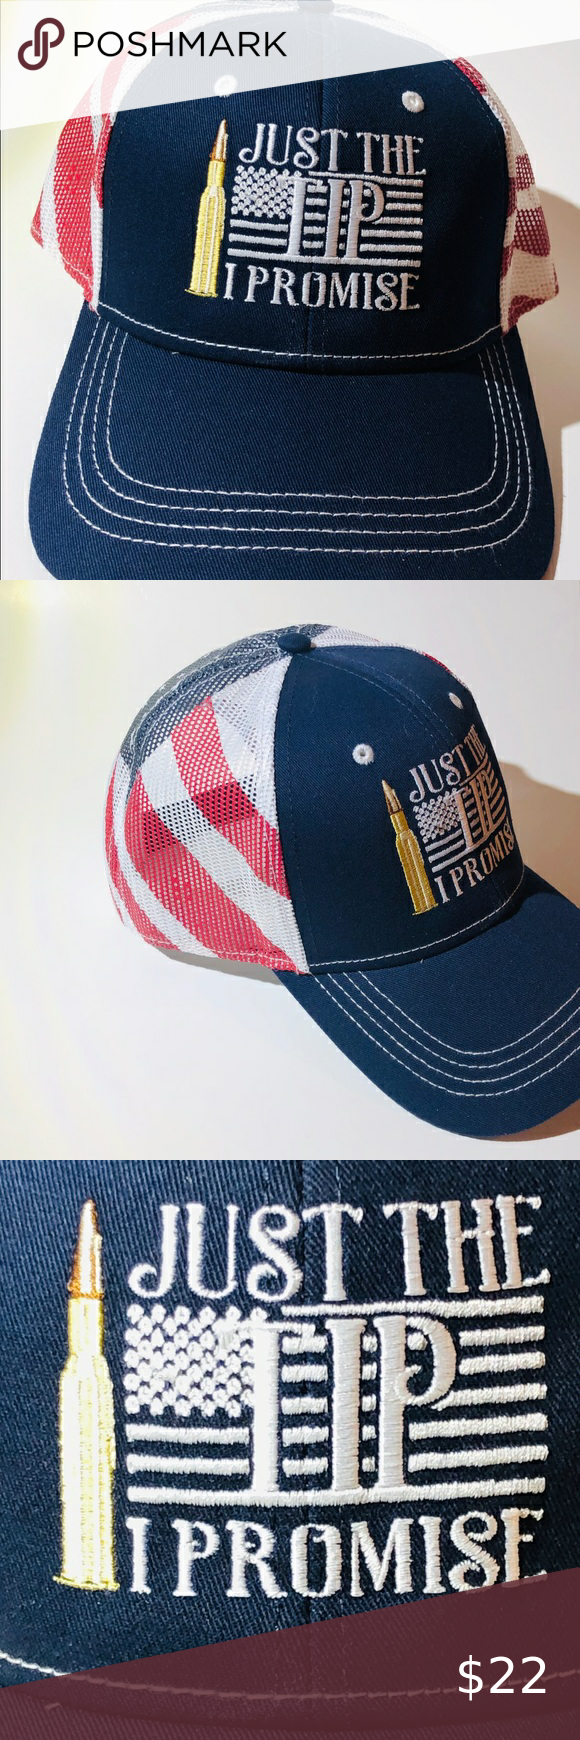 Just The Tip I Promise Mesh Style Ball Cap Ball Cap Cap I Promise